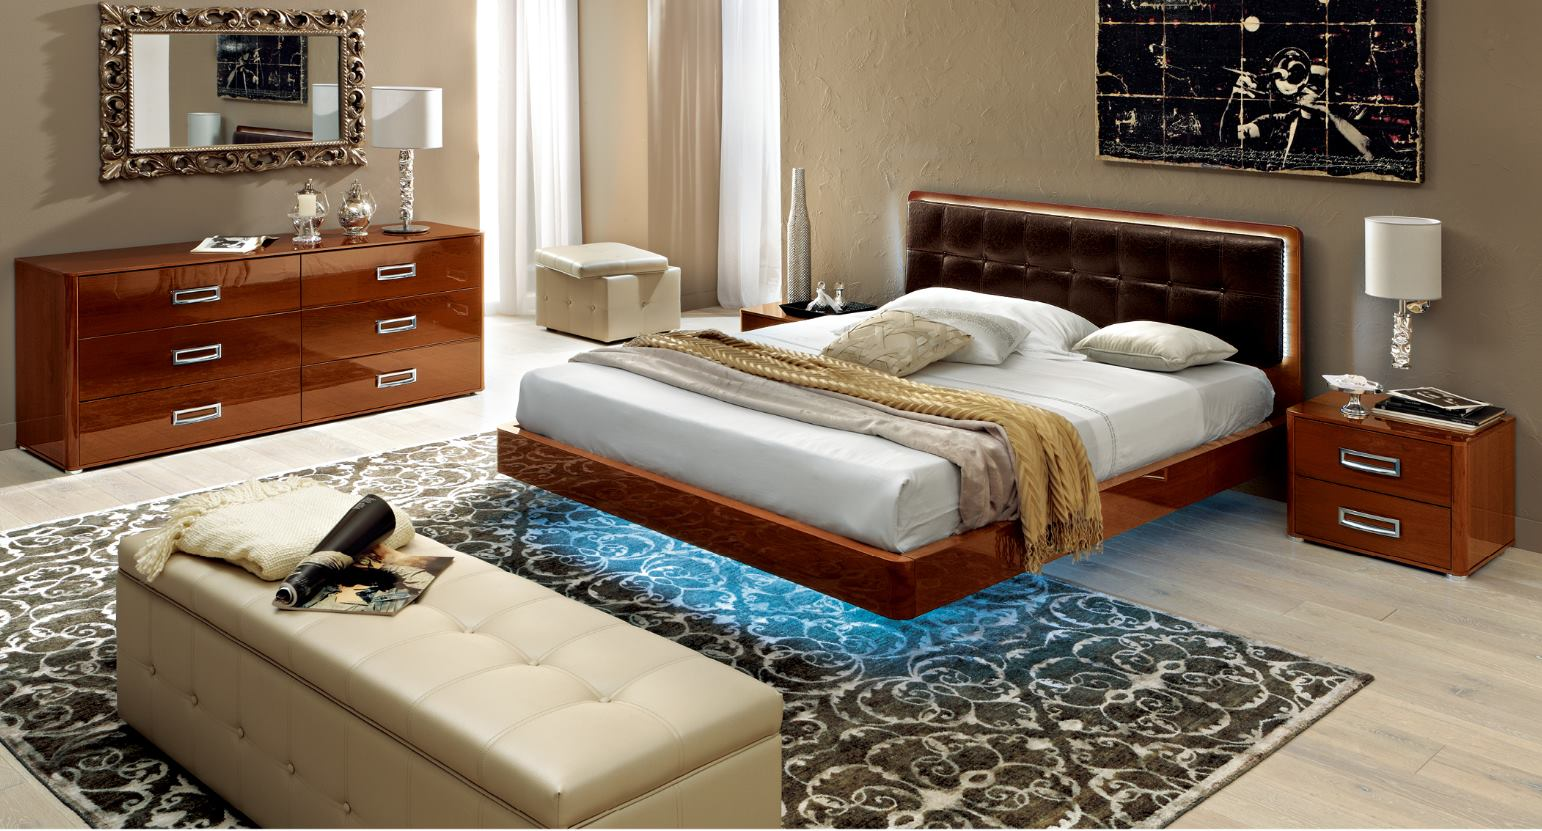 Bedroom Furniture 2013 blessed furniture | furniture | kissimmee, fl